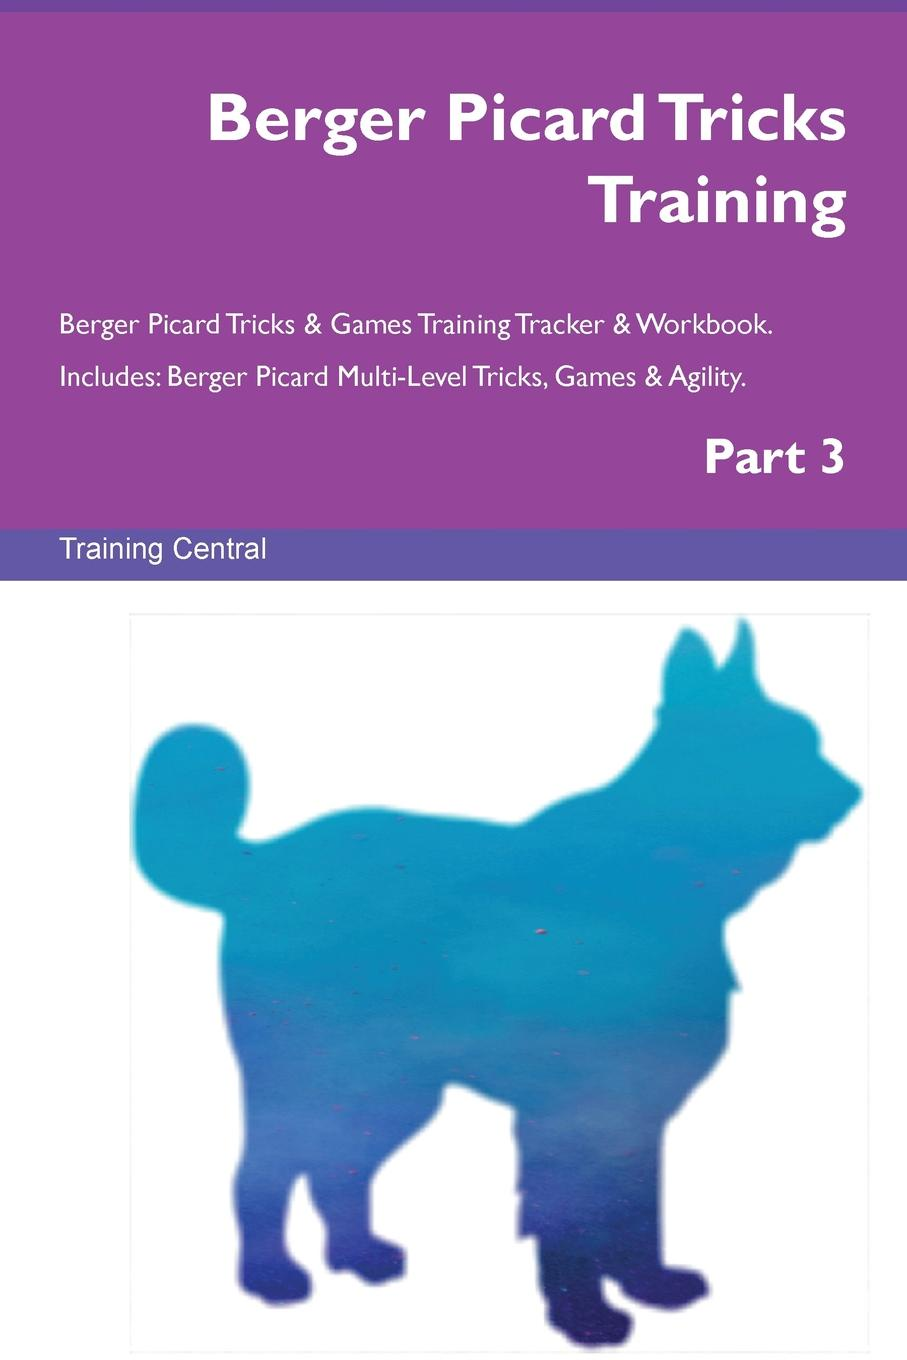 Training Central Berger Picard Tricks Training Berger Picard Tricks & Games Training Tracker & Workbook. Includes. Berger Picard Multi-Level Tricks, Games & Agility. Part 3